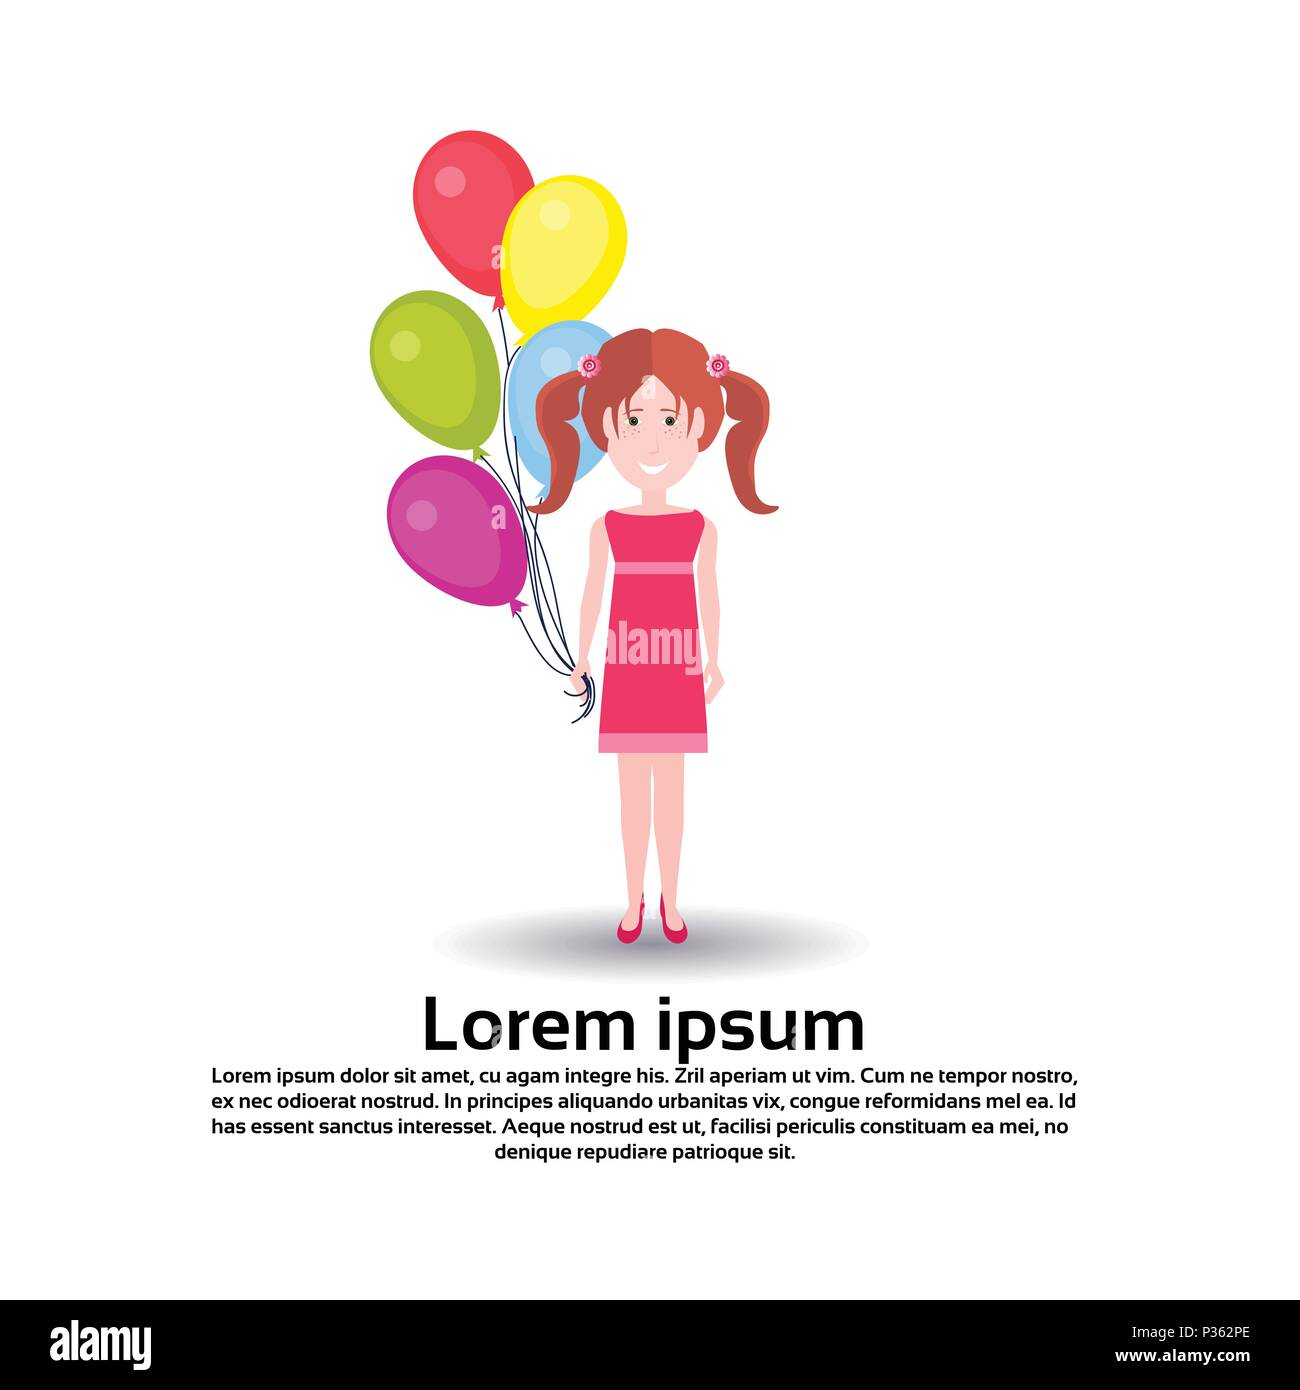 Girl Balloons Character Personage Female Template For Design